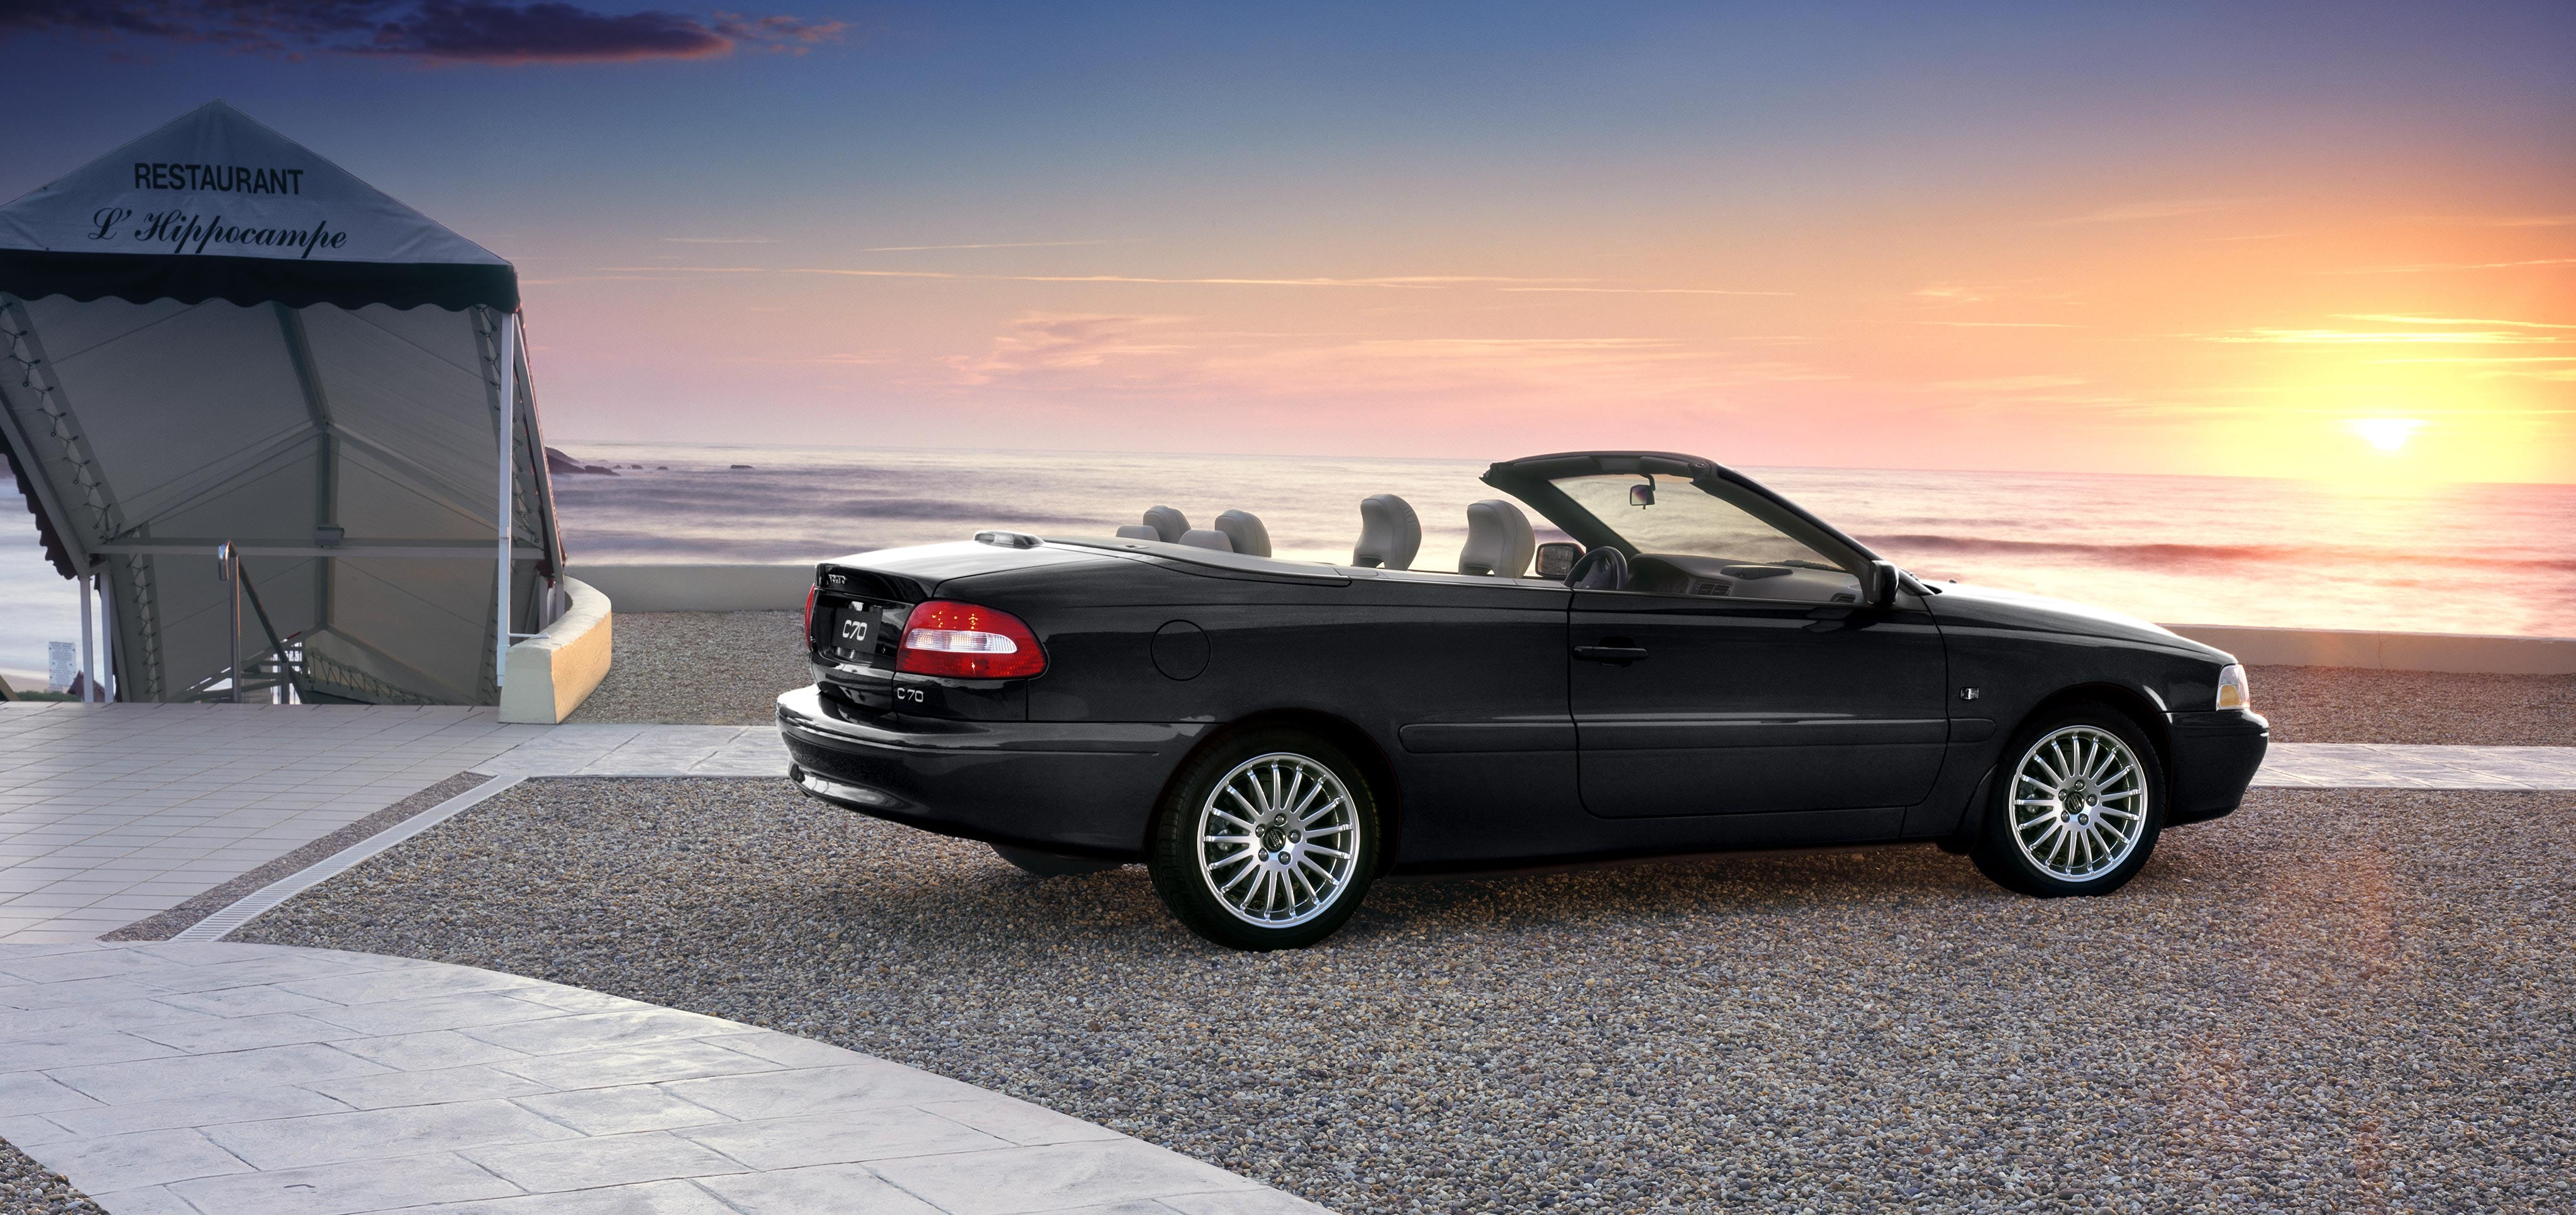 der volvo c70 als cabrio volvo cars. Black Bedroom Furniture Sets. Home Design Ideas